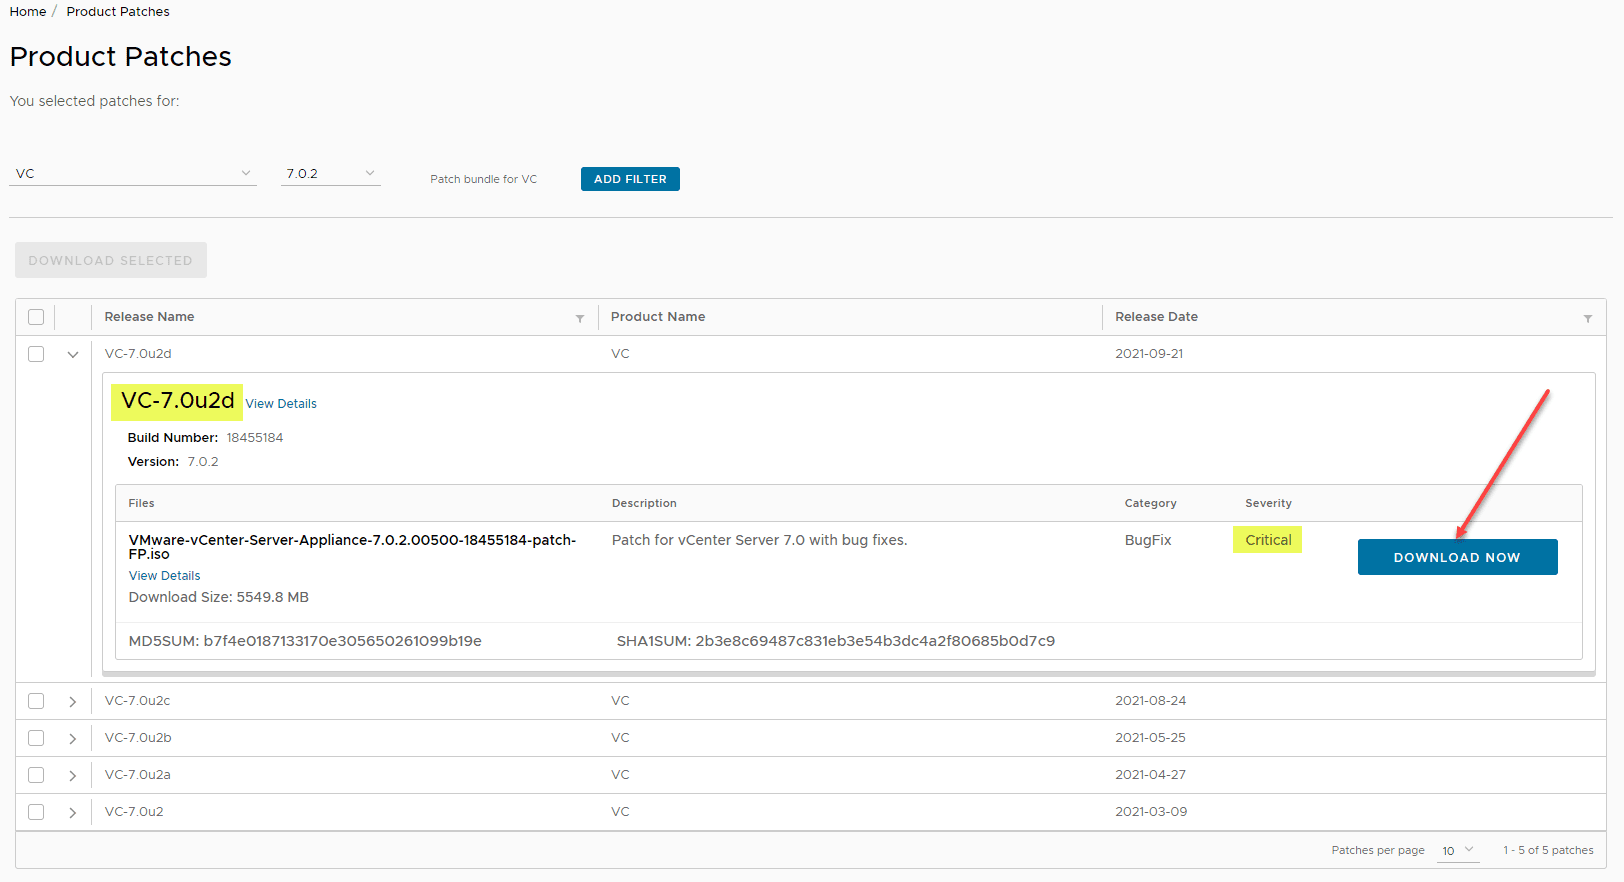 Download the vCenter Server patch ISO